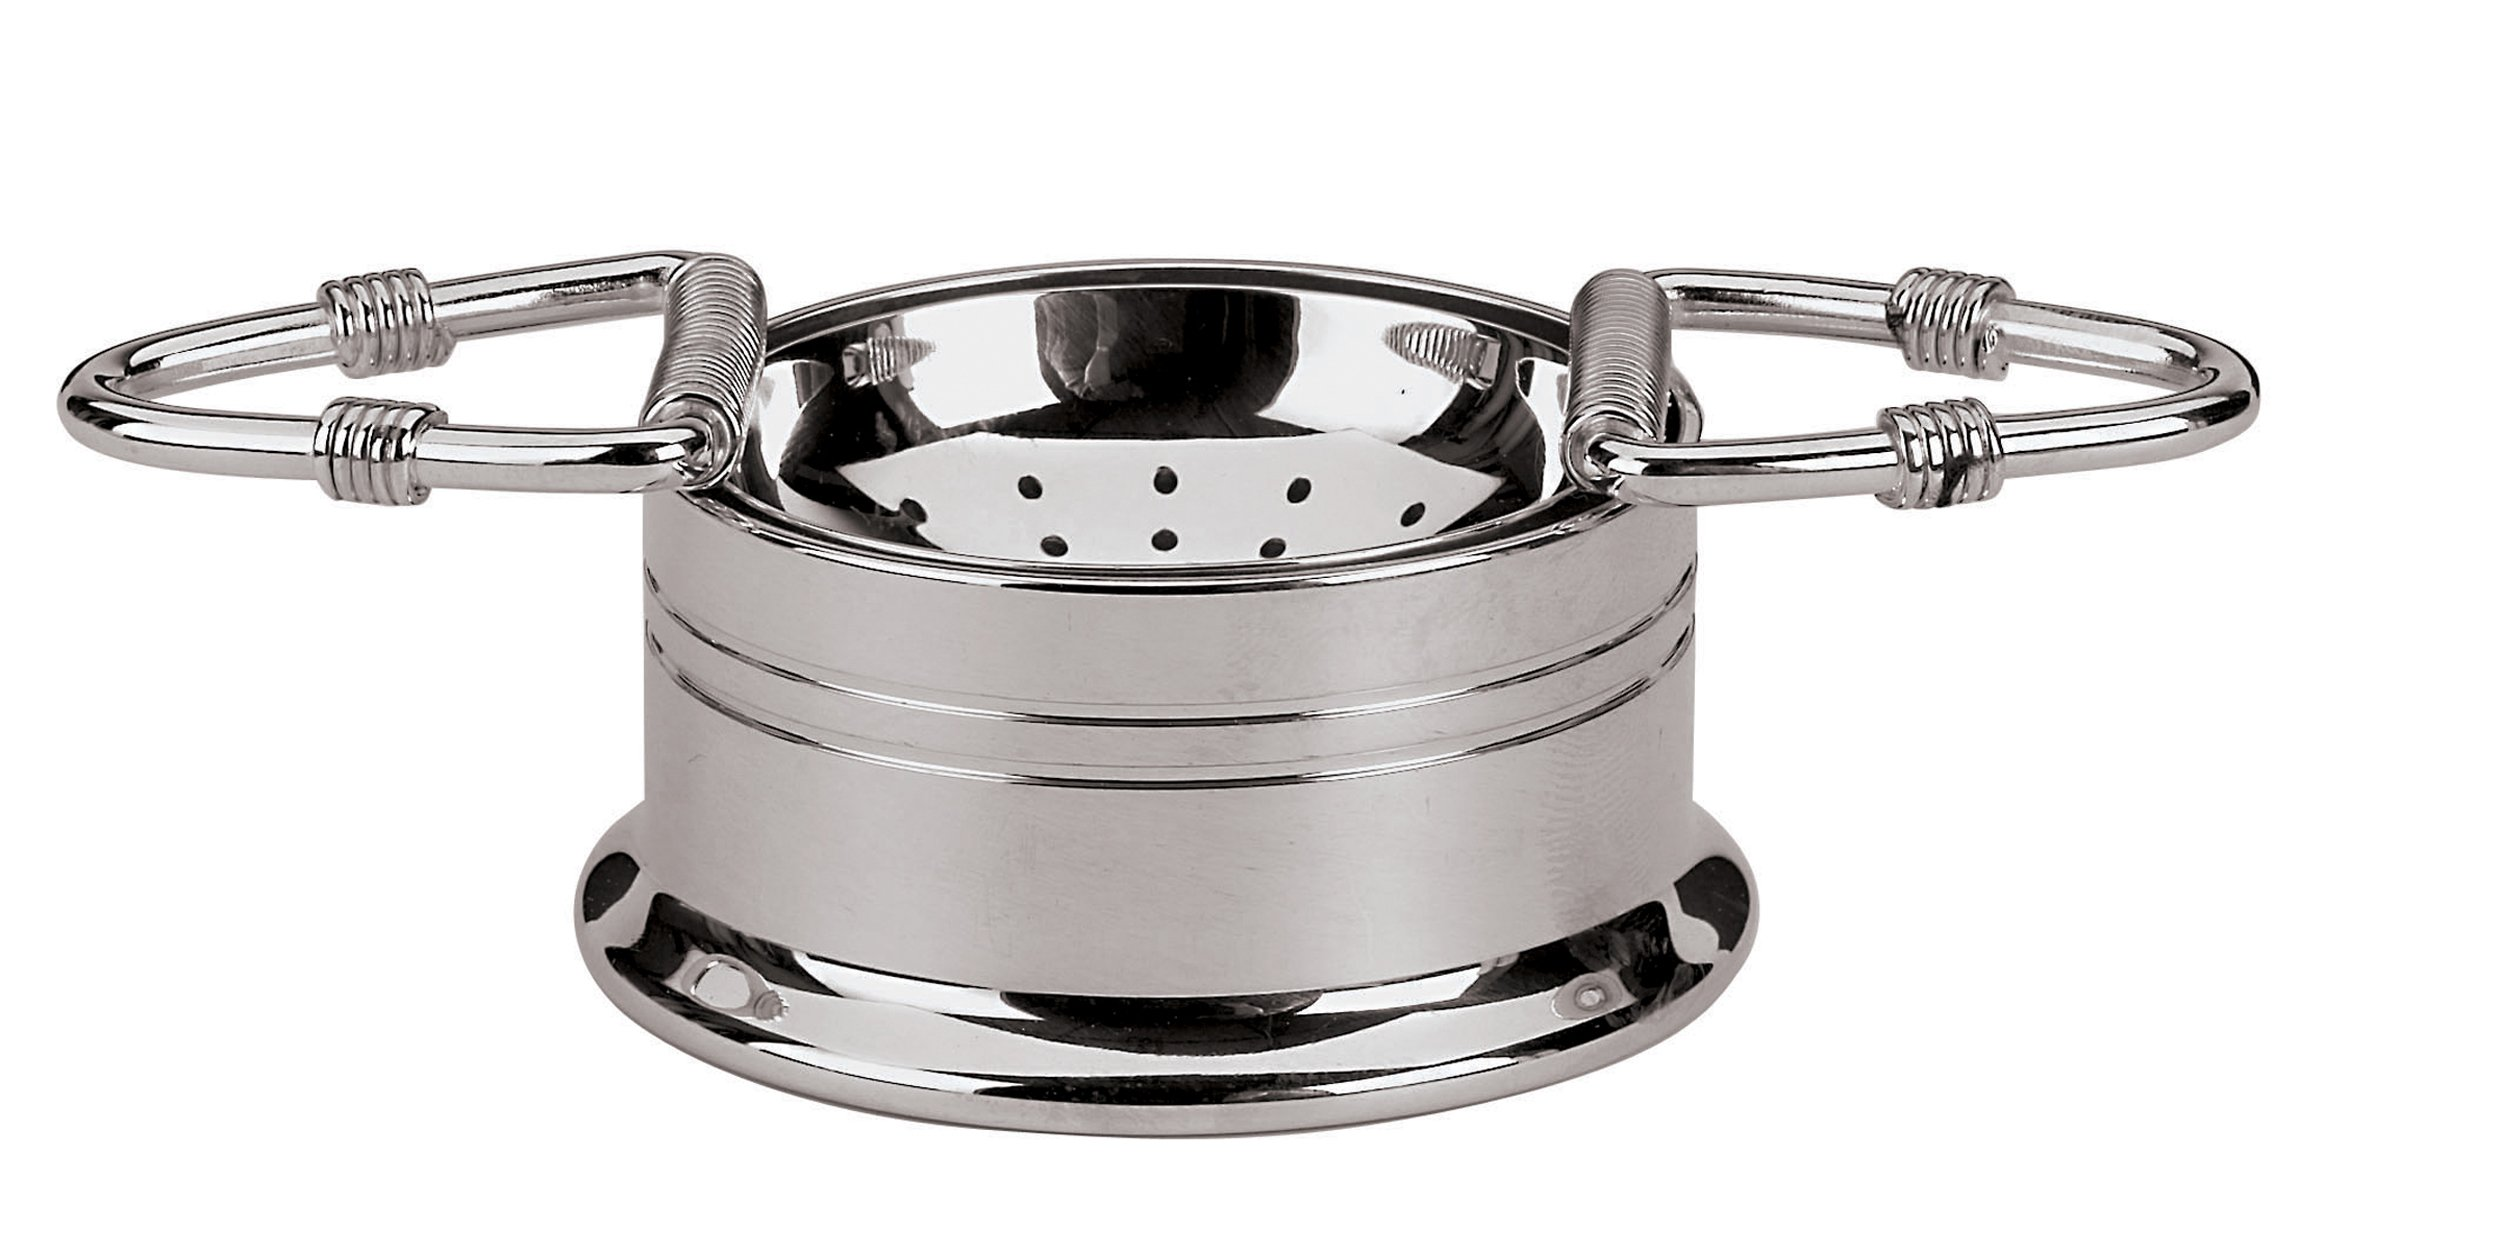 Paderno World Cuisine 2-Inch Stainless-Steel Tea Strainer with Handles and Holder